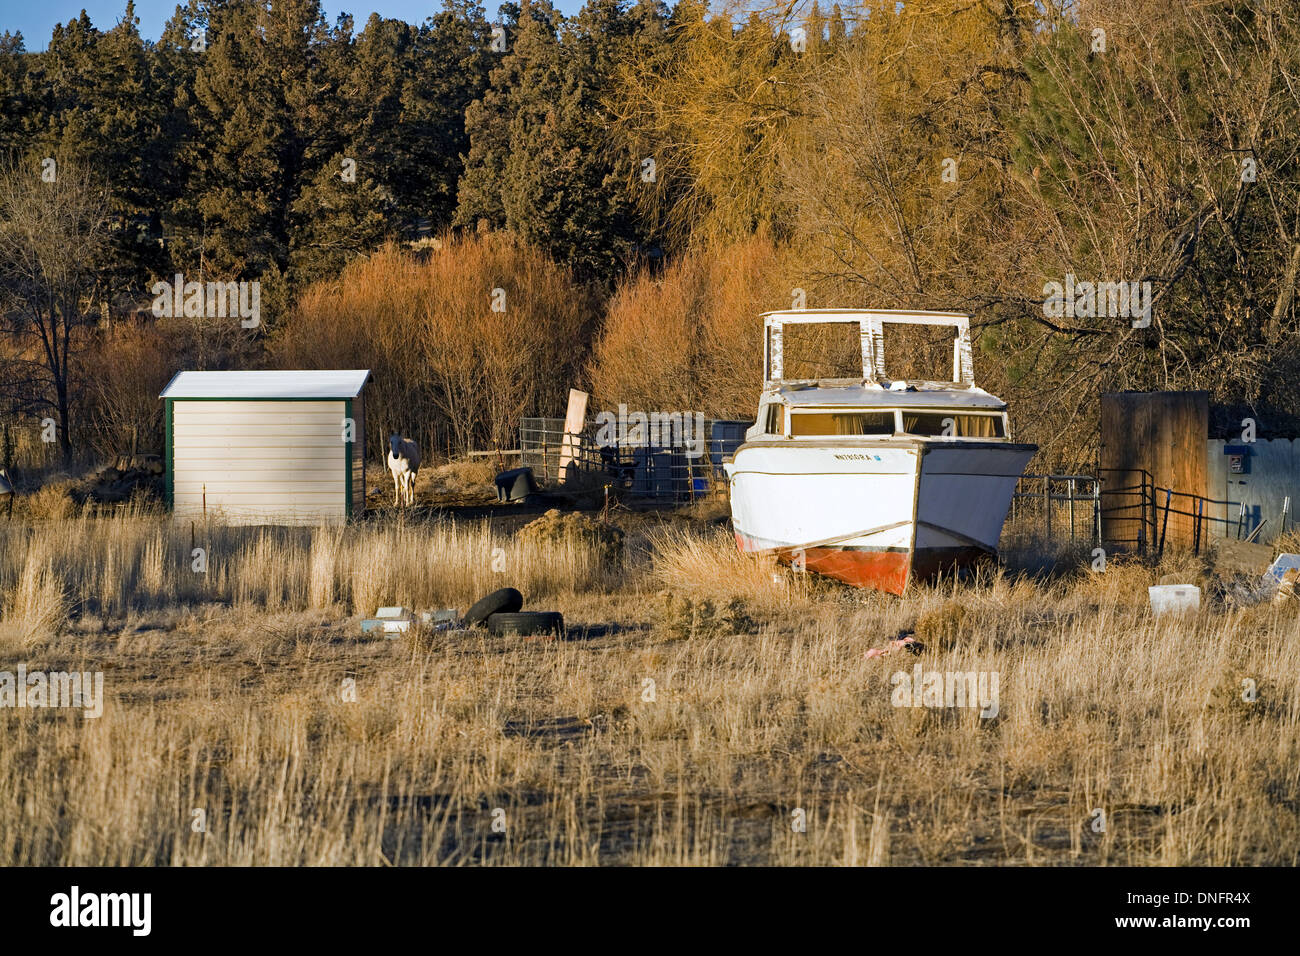 A badly neglected yacht sits in a field in central Oregon. - Stock Image